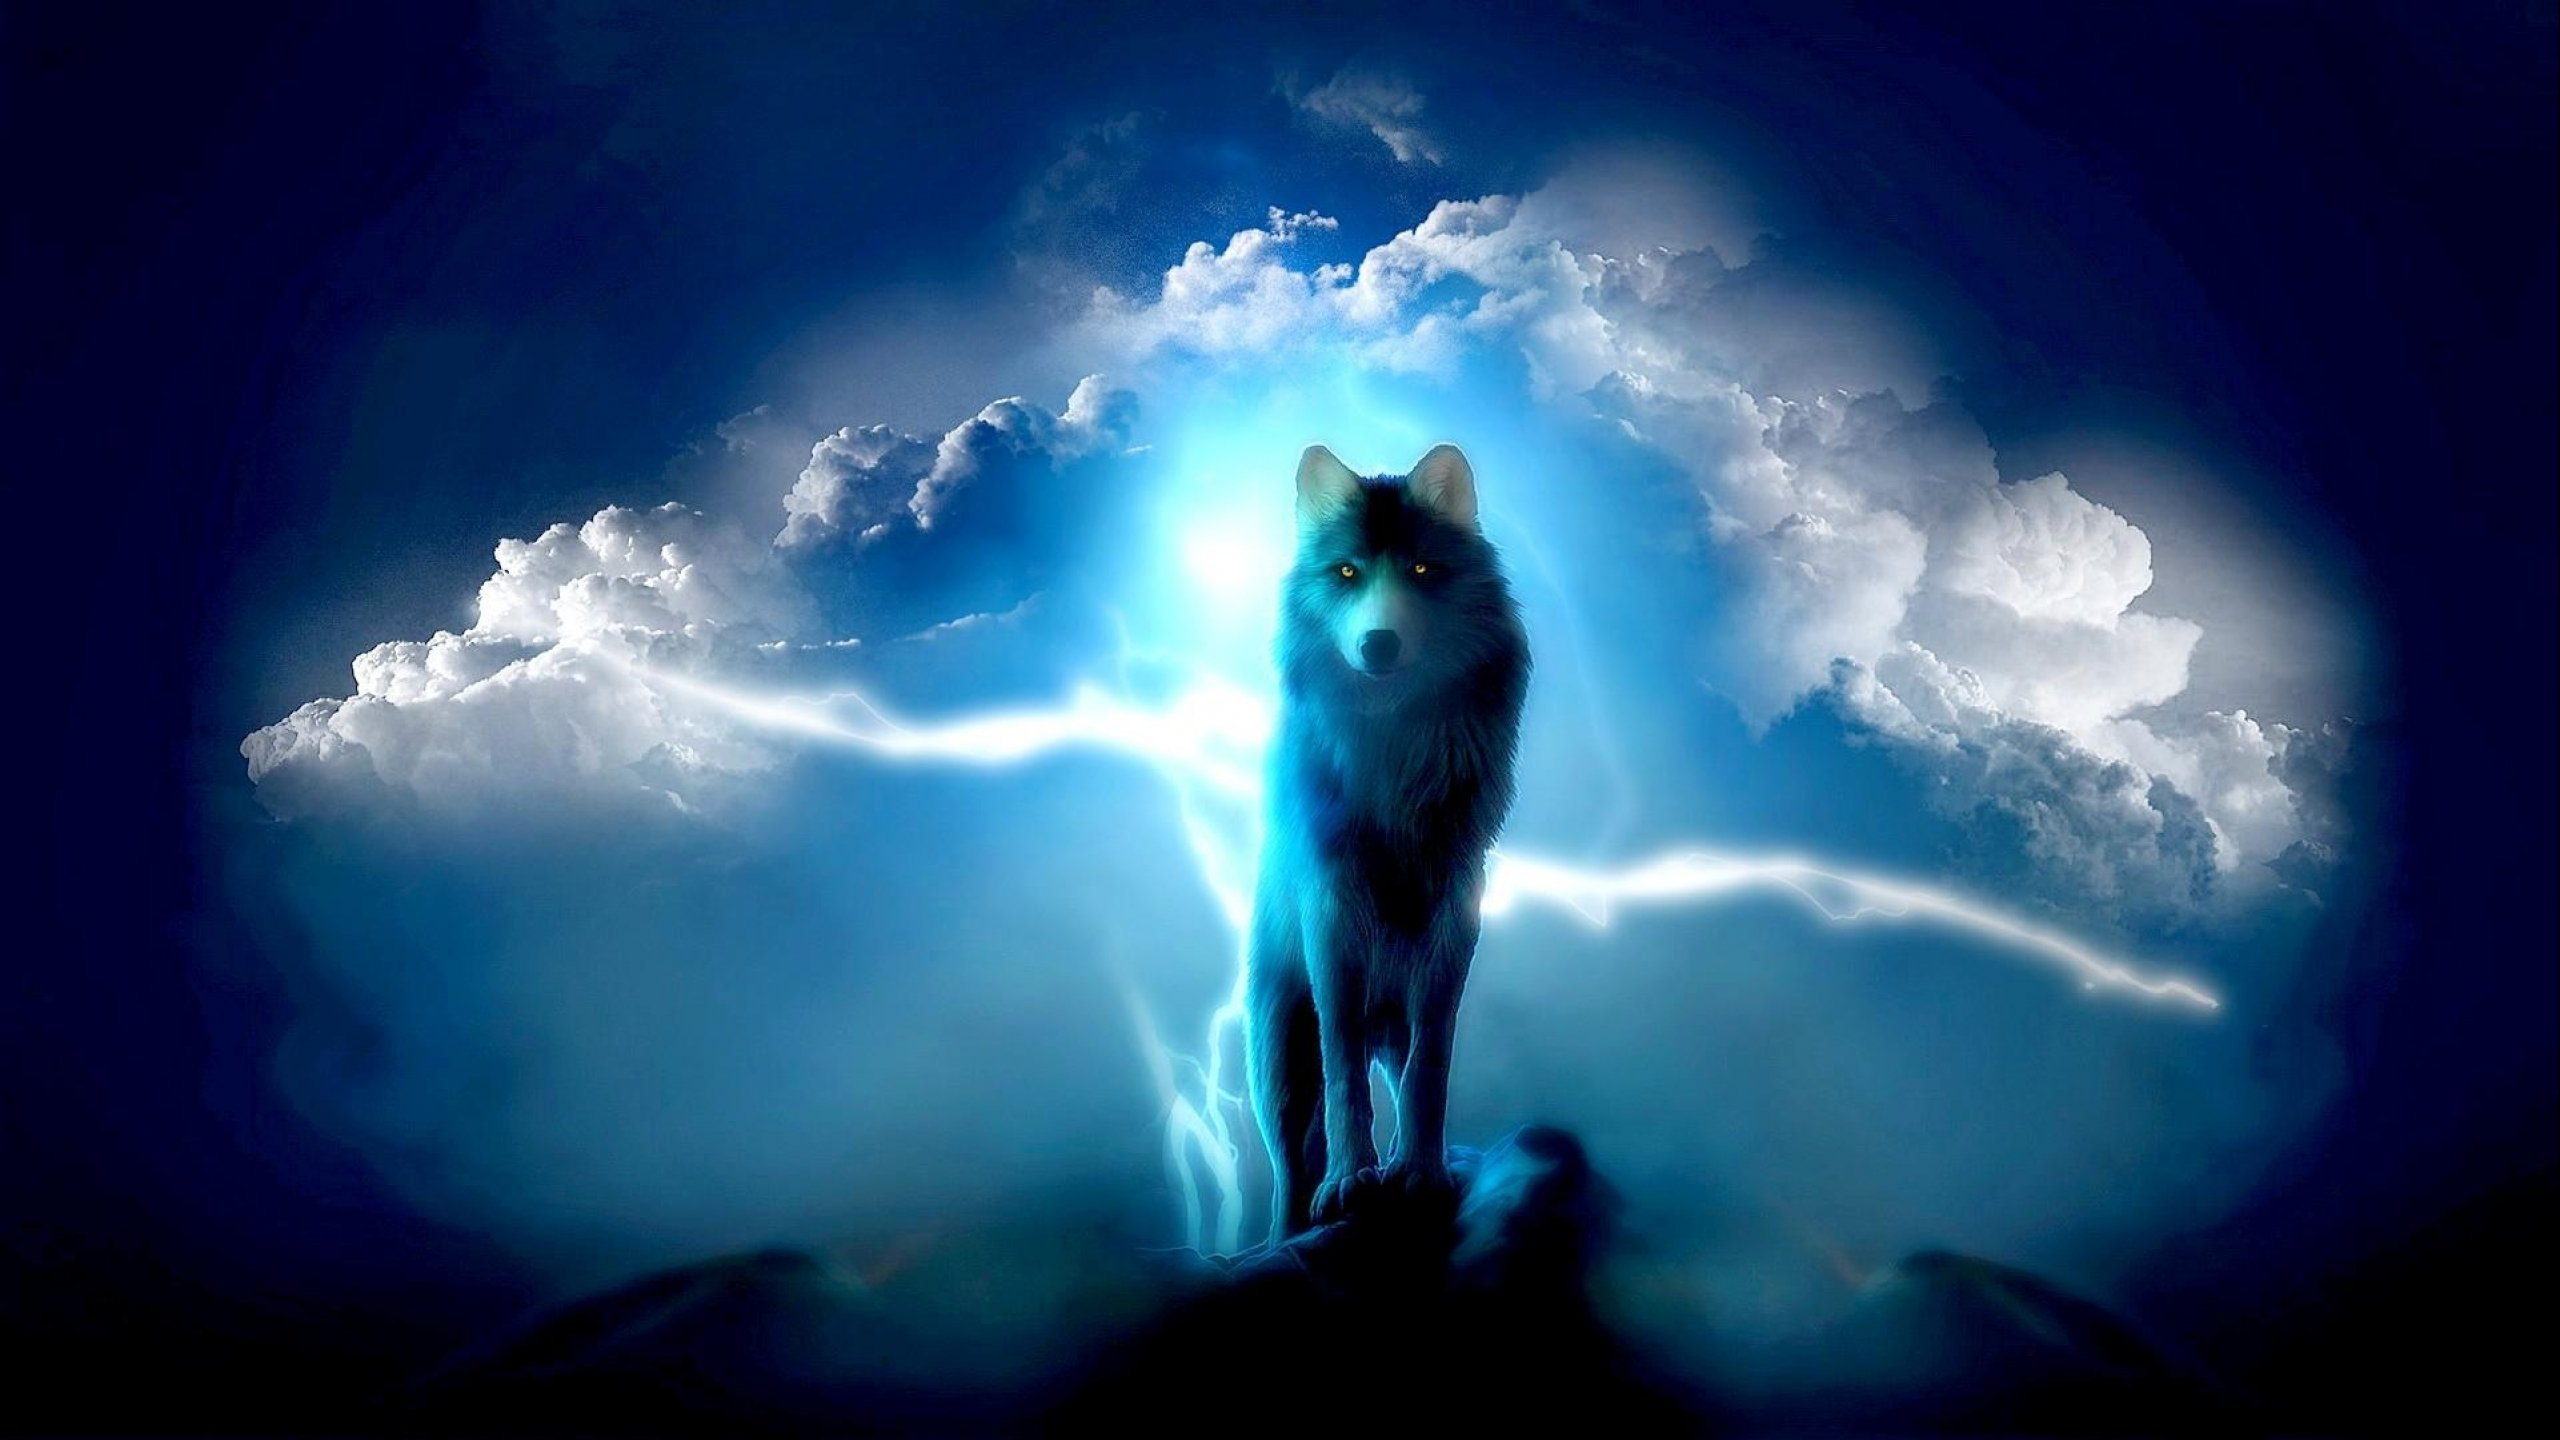 wolves and lightning wallpapers - photo #3